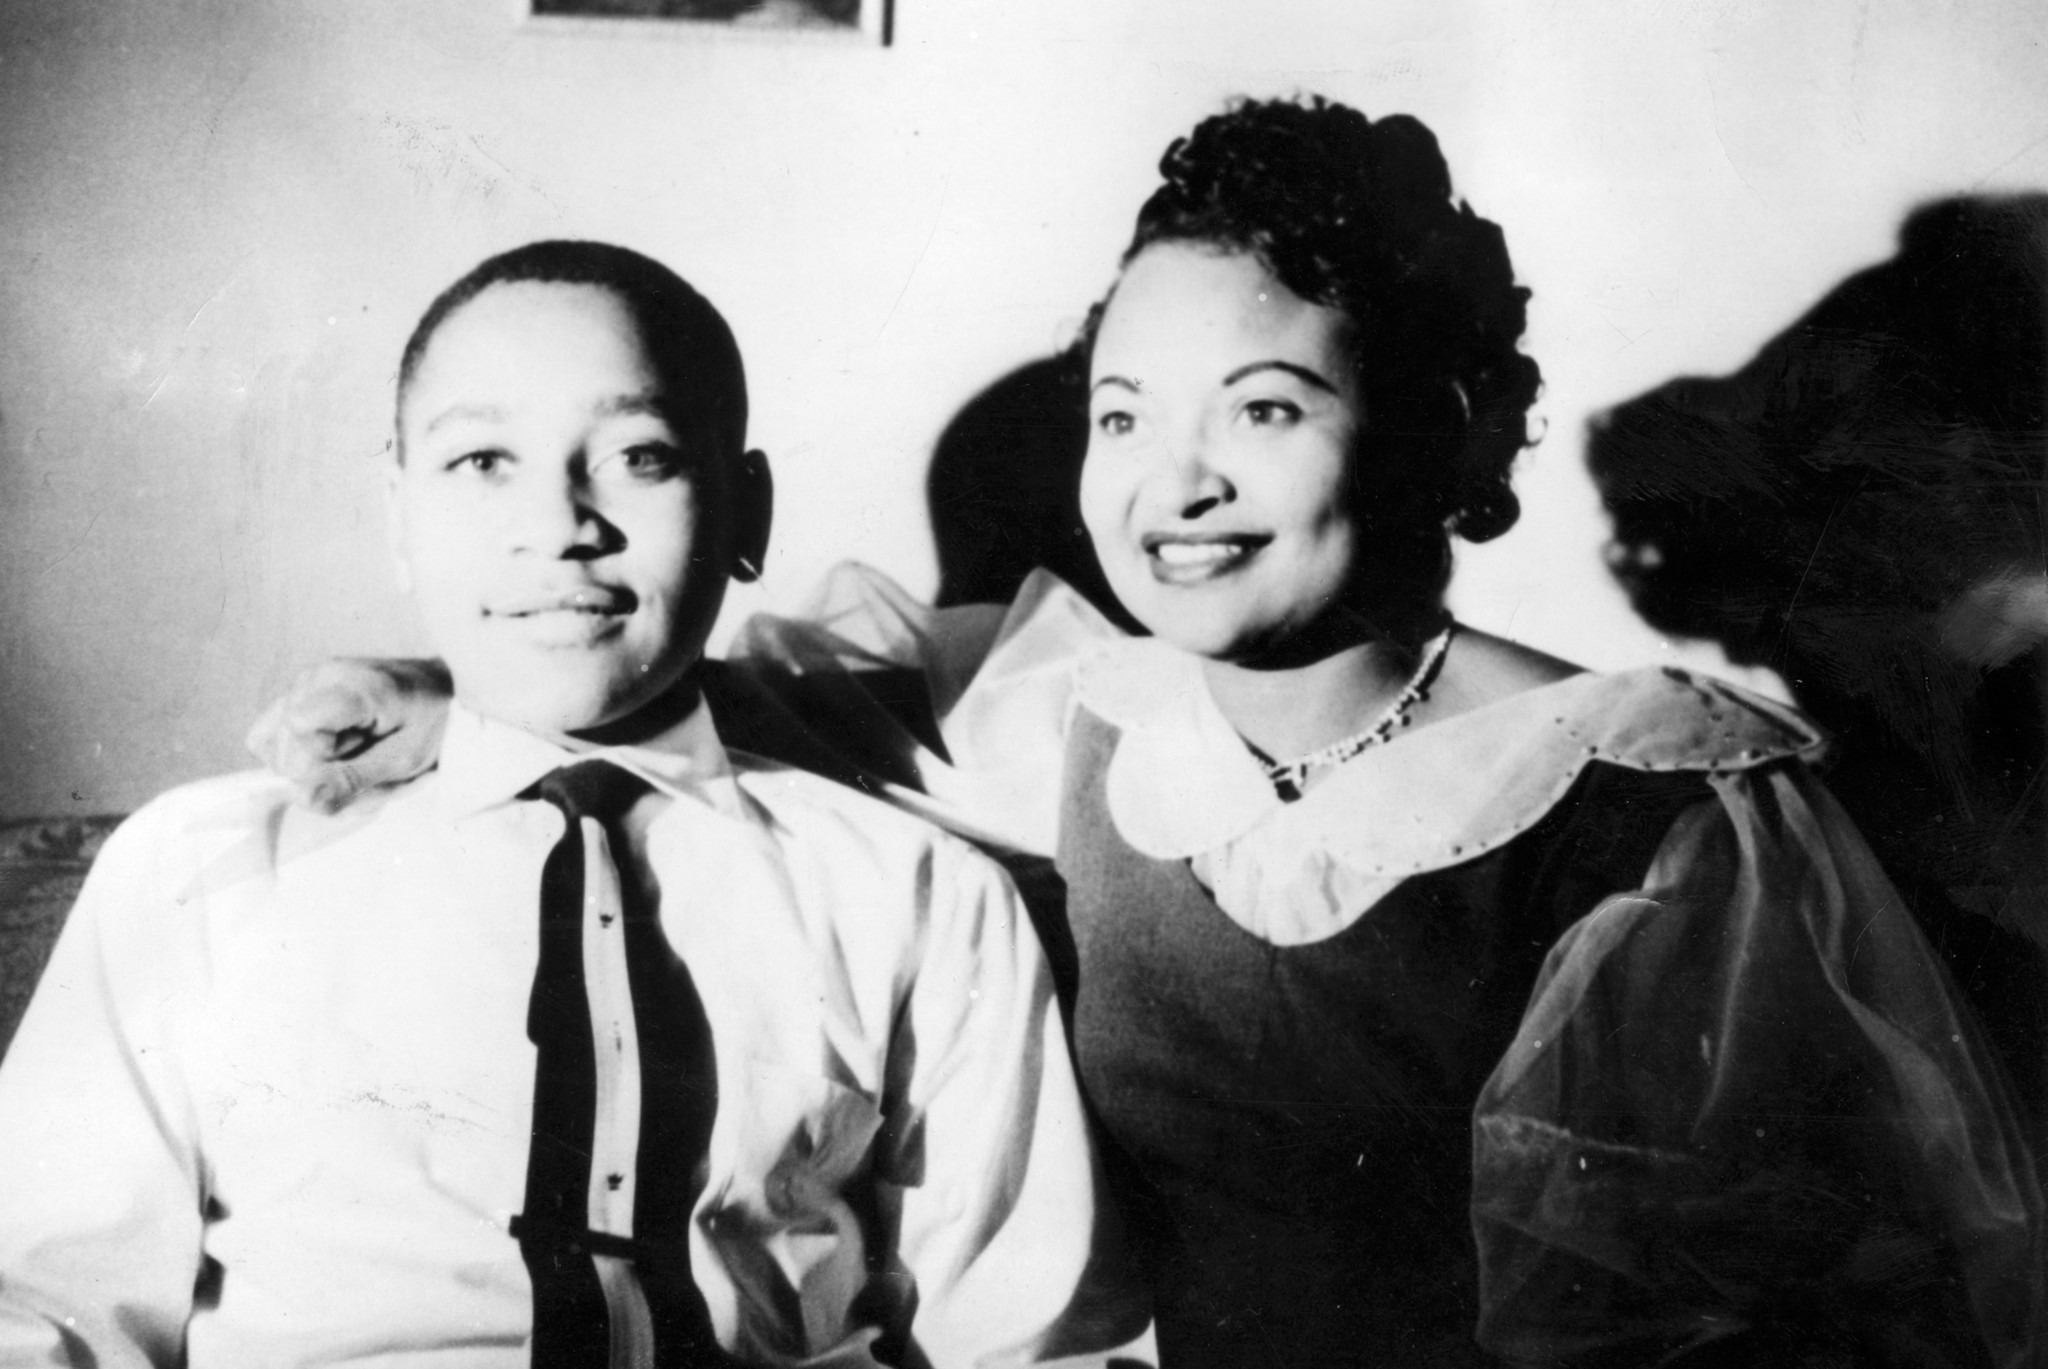 emmett till accuser admits to giving false testimony at murder emmett till accuser admits to giving false testimony at murder trial book chicago tribune